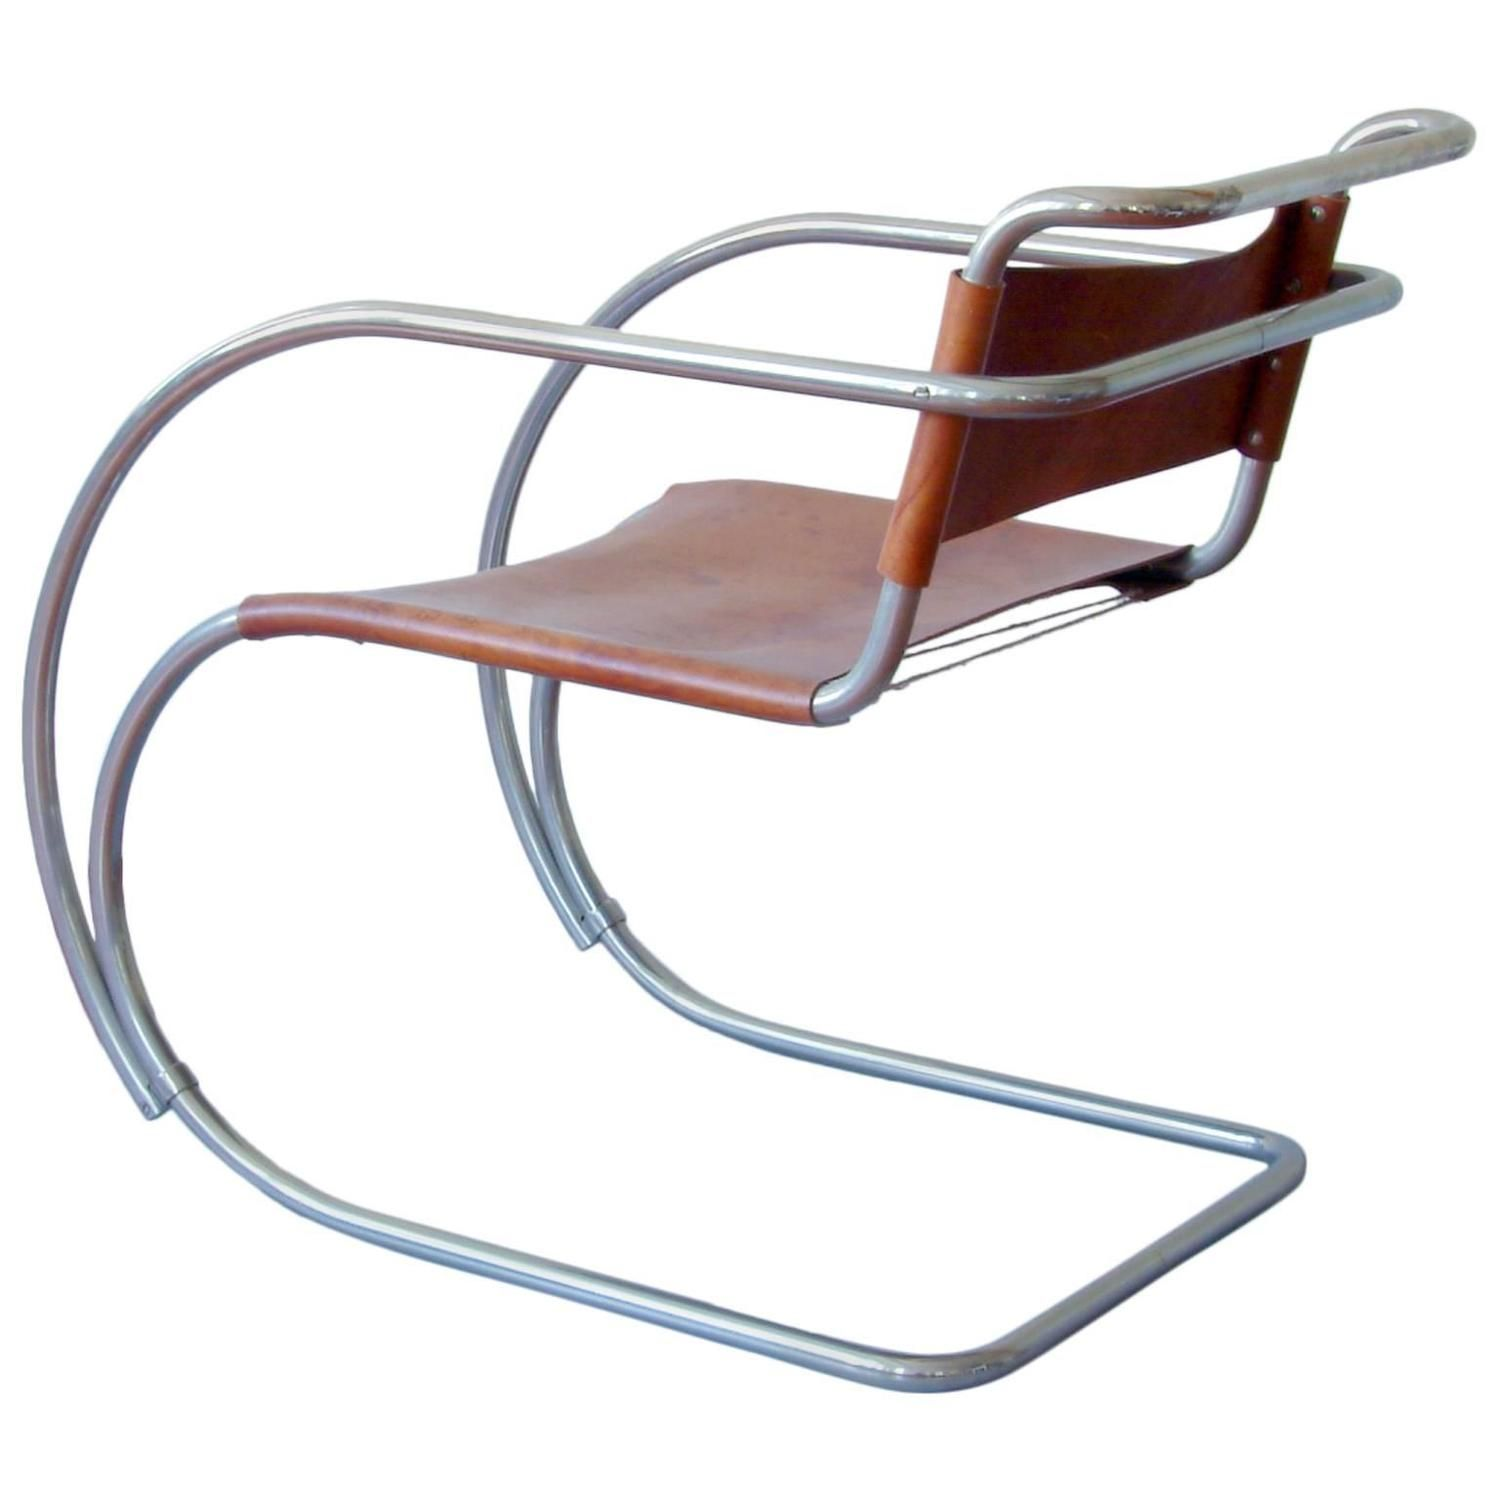 Rare Tubular Steel Cantilever Chair MR 20 by Ludwig Mies van der